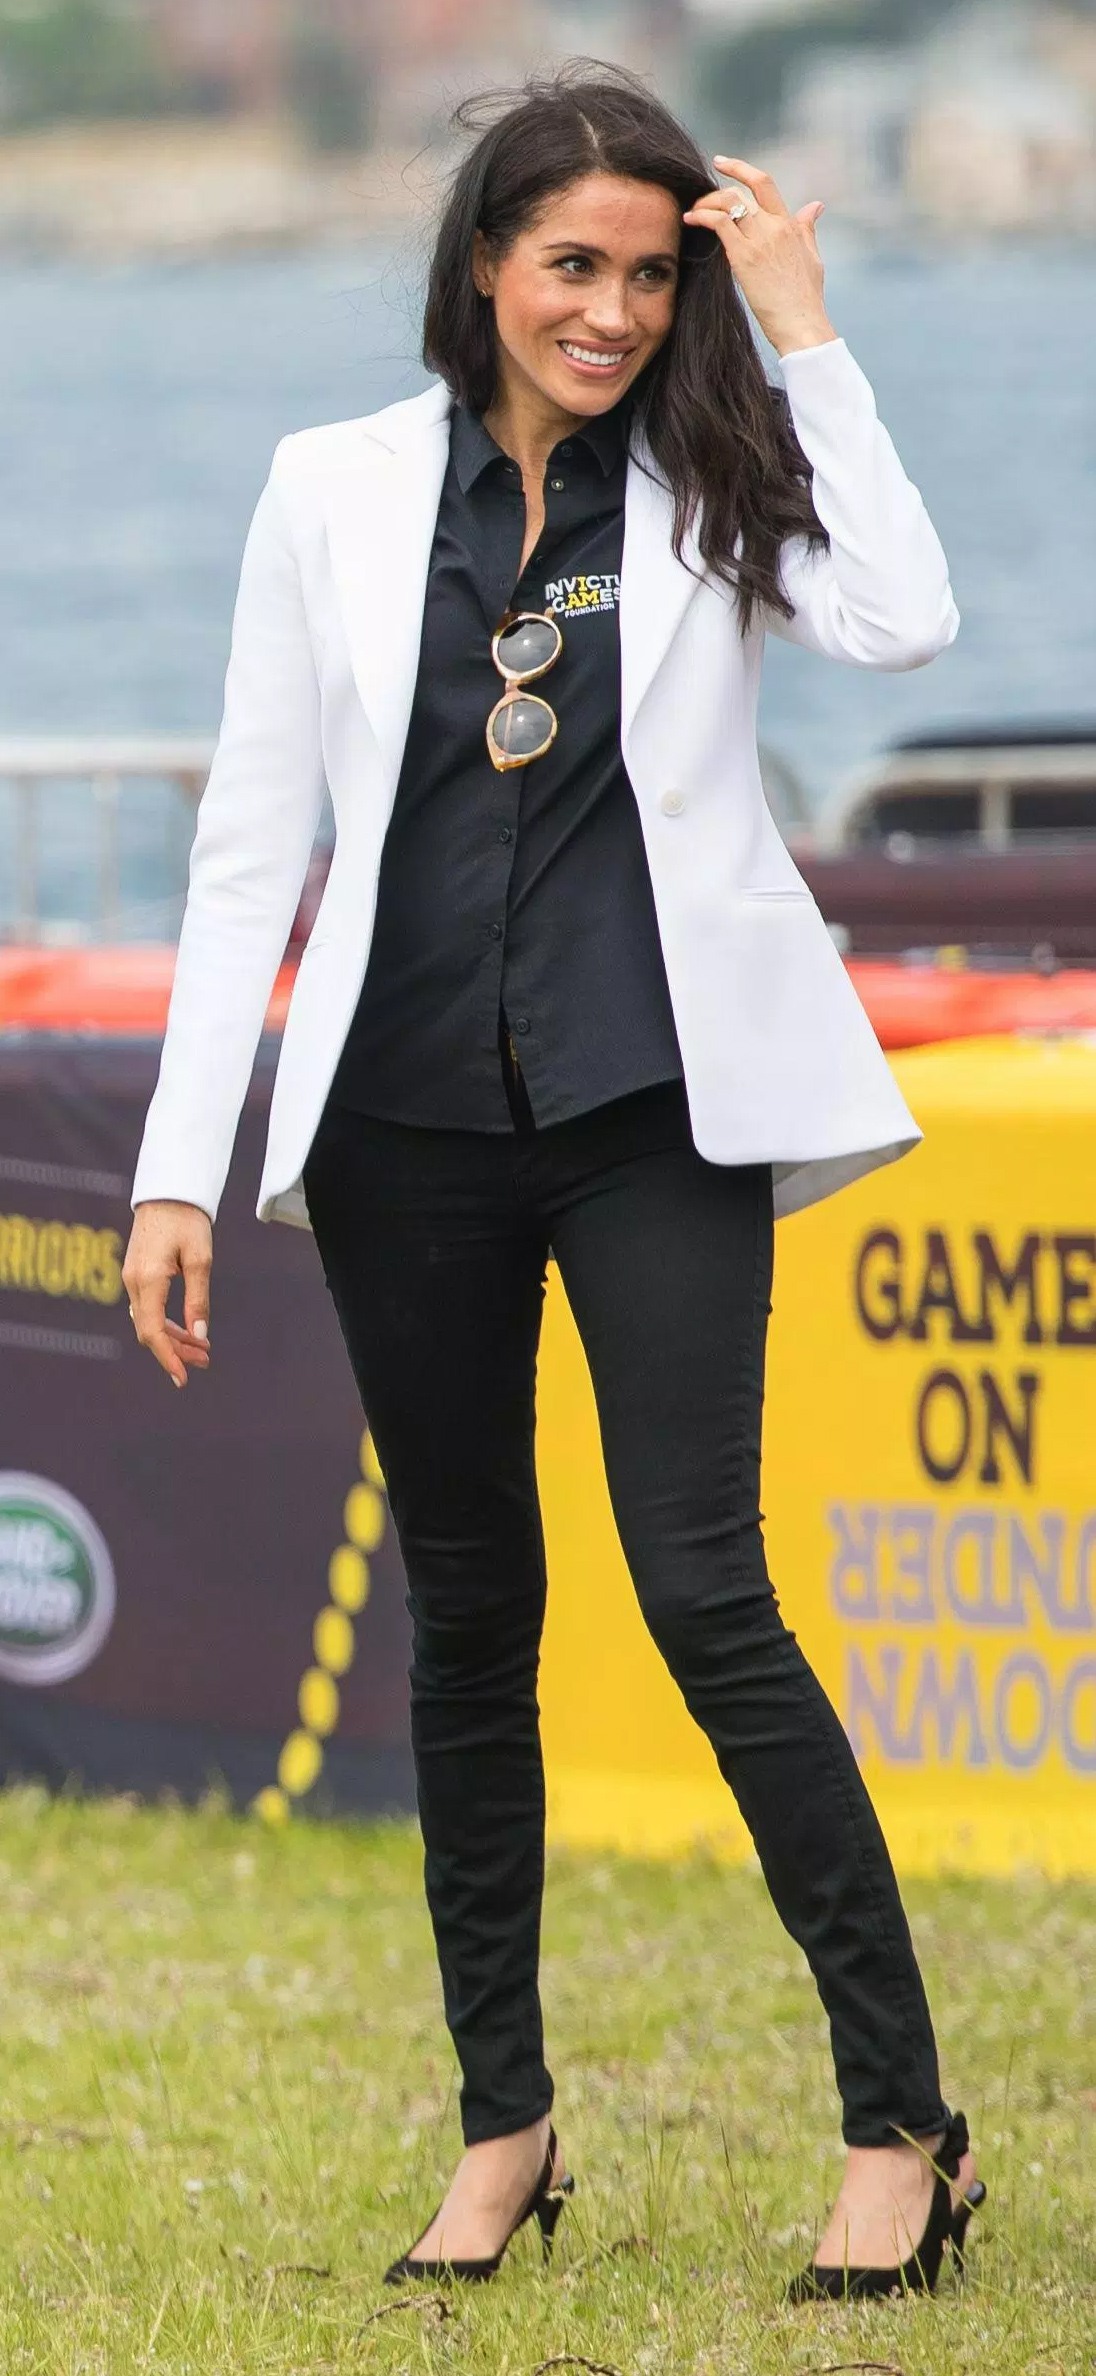 Meghan, Duchess of Sussex at the Invictus Games Sydney 2018.